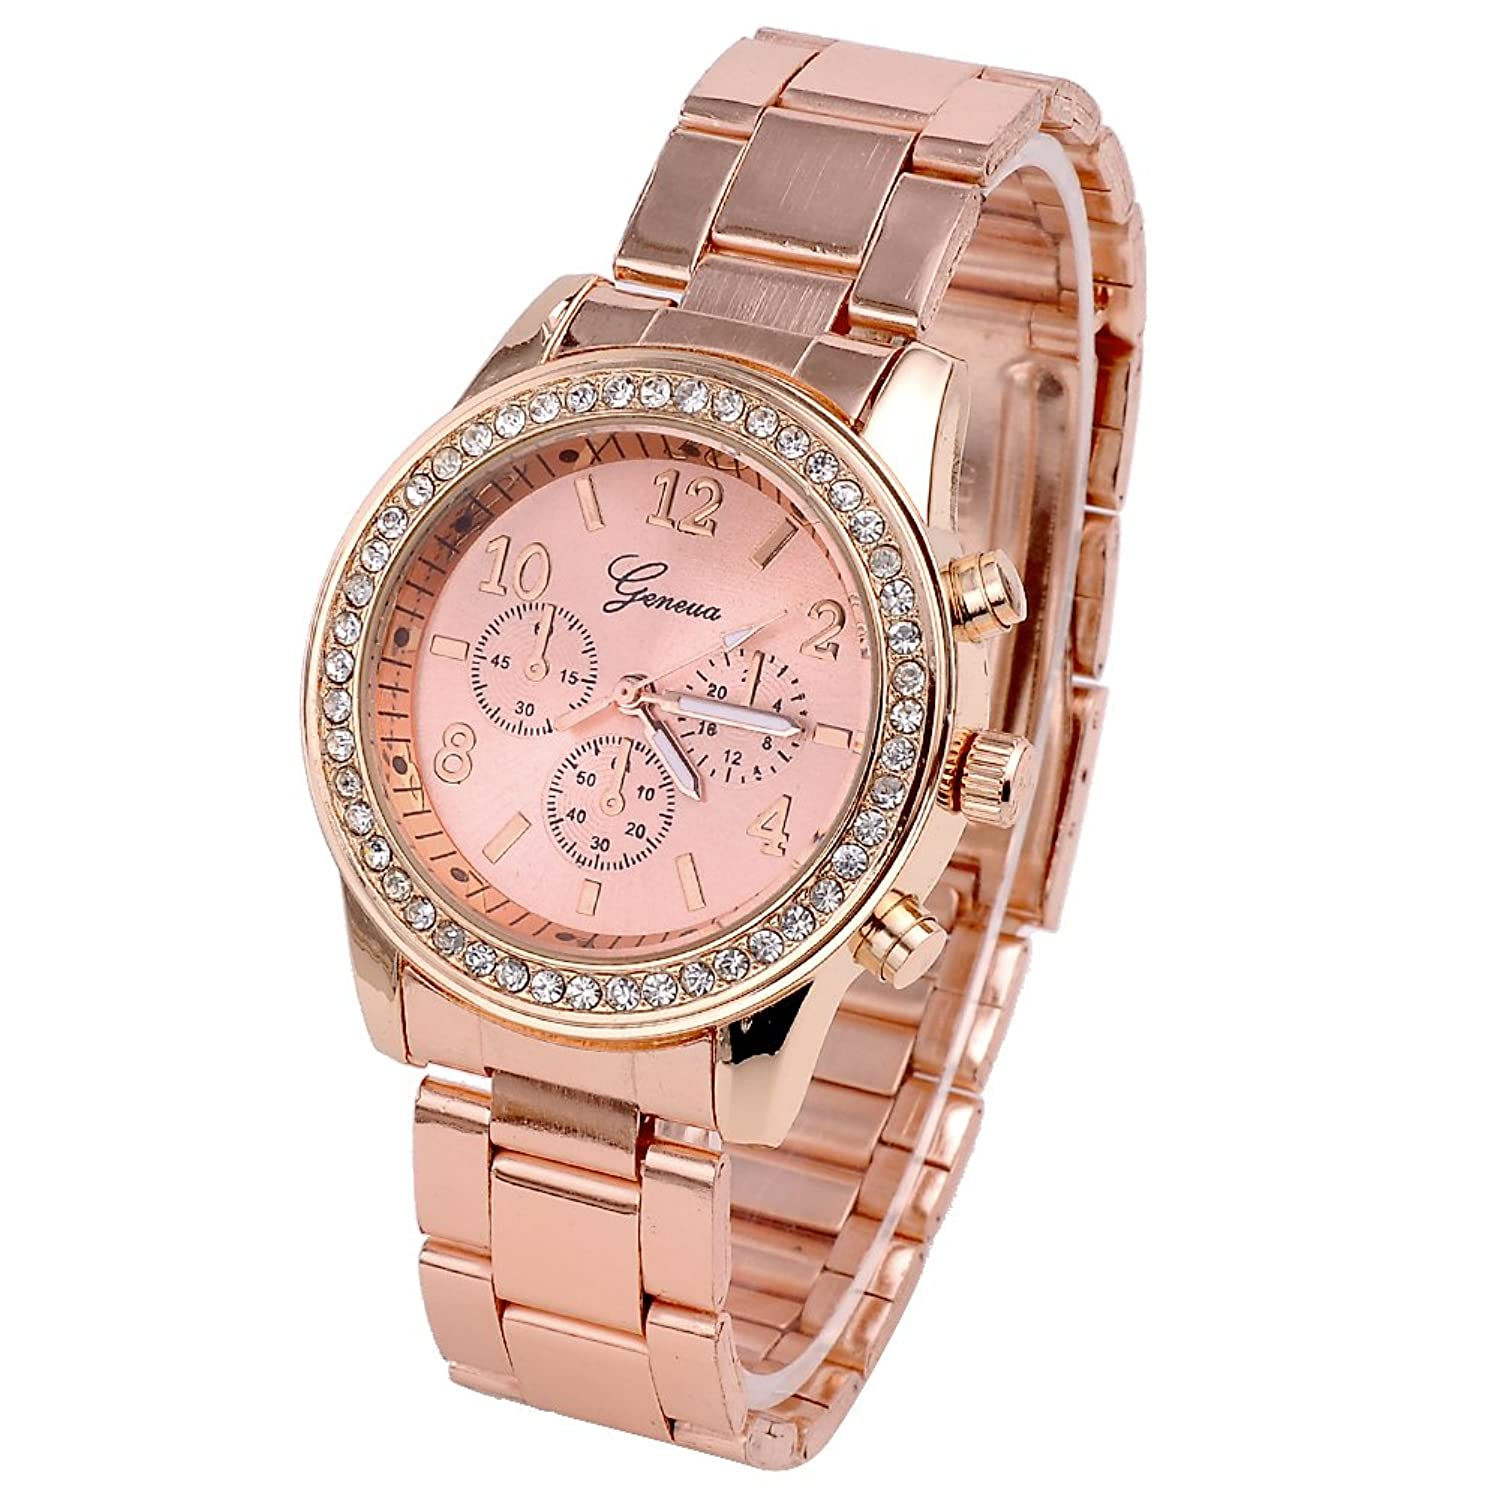 top-plaza-fashion-women-alloy-analog-crystal-watch-rose-gold-tone